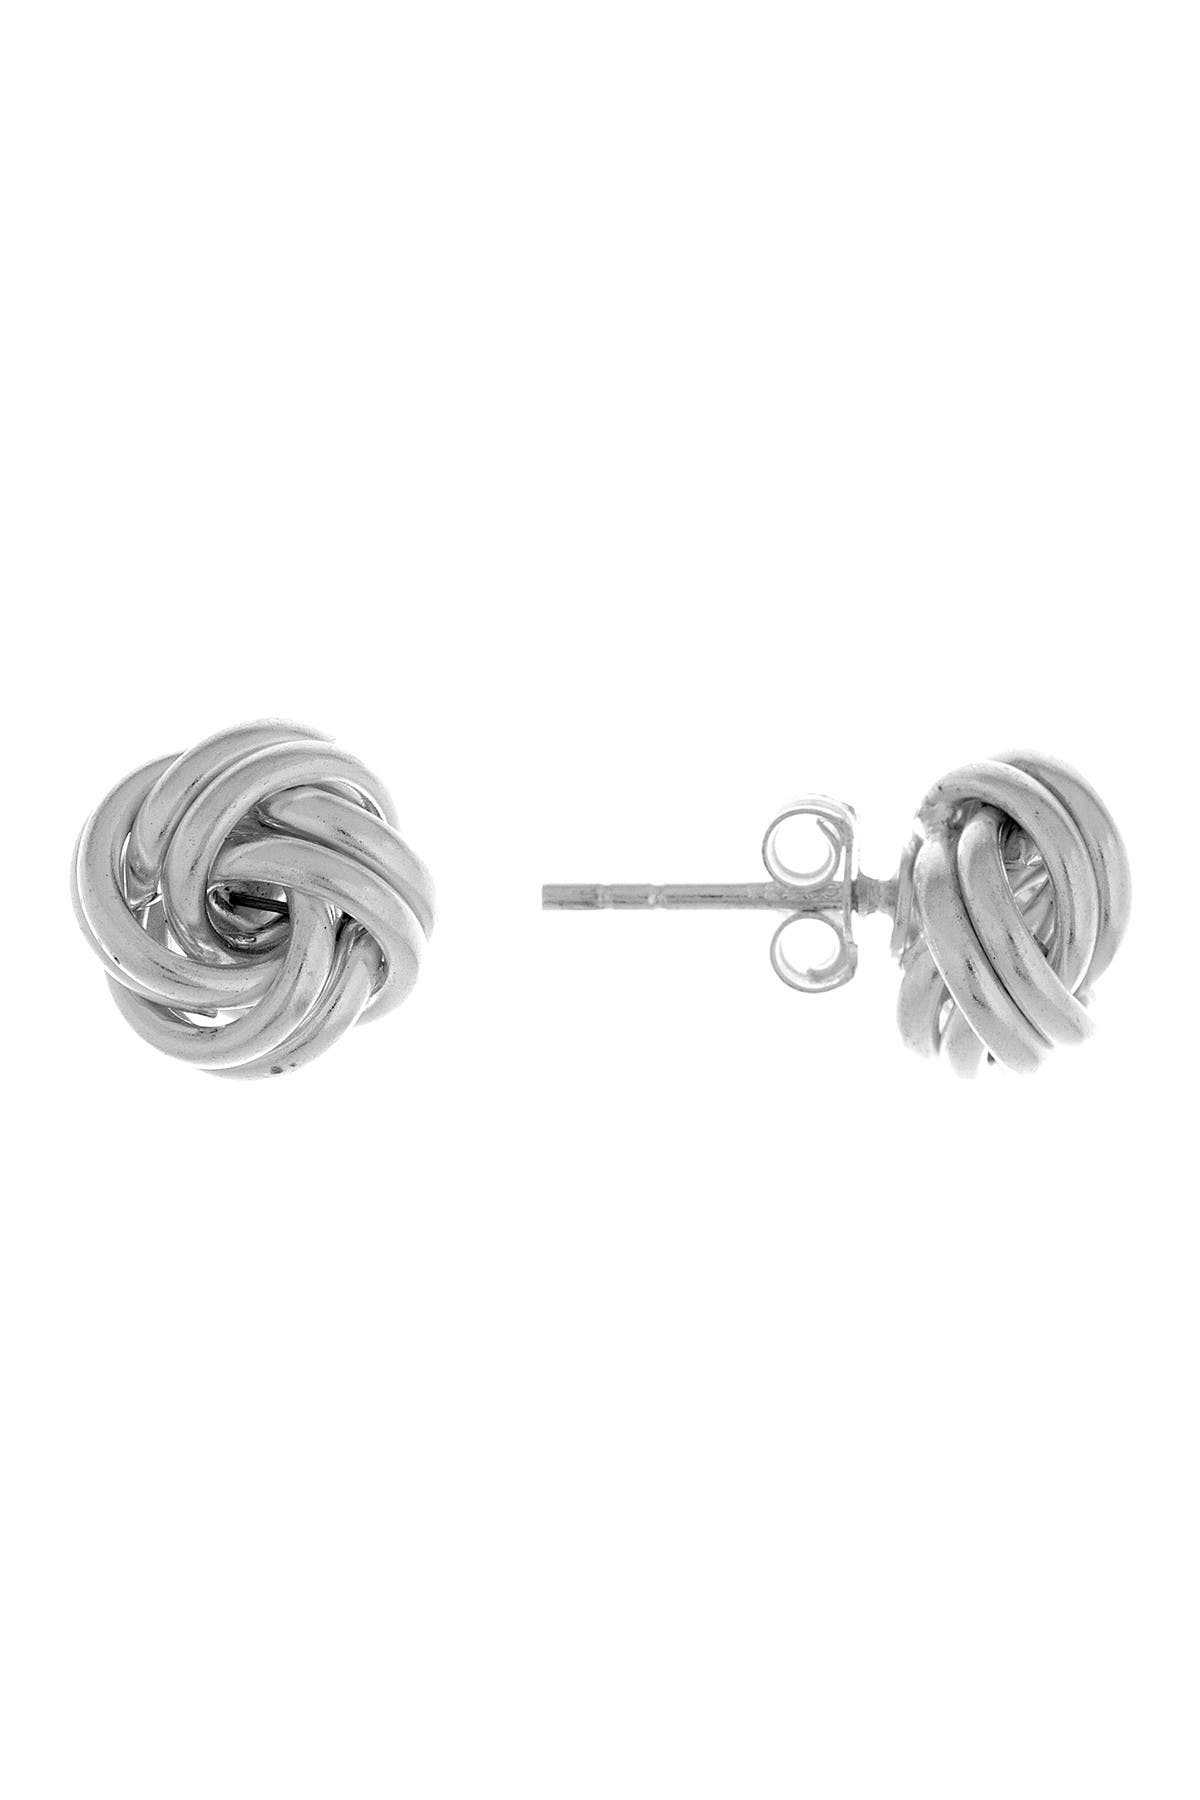 Image of Best Silver Inc. Sterling Silver Love Knot Earrings